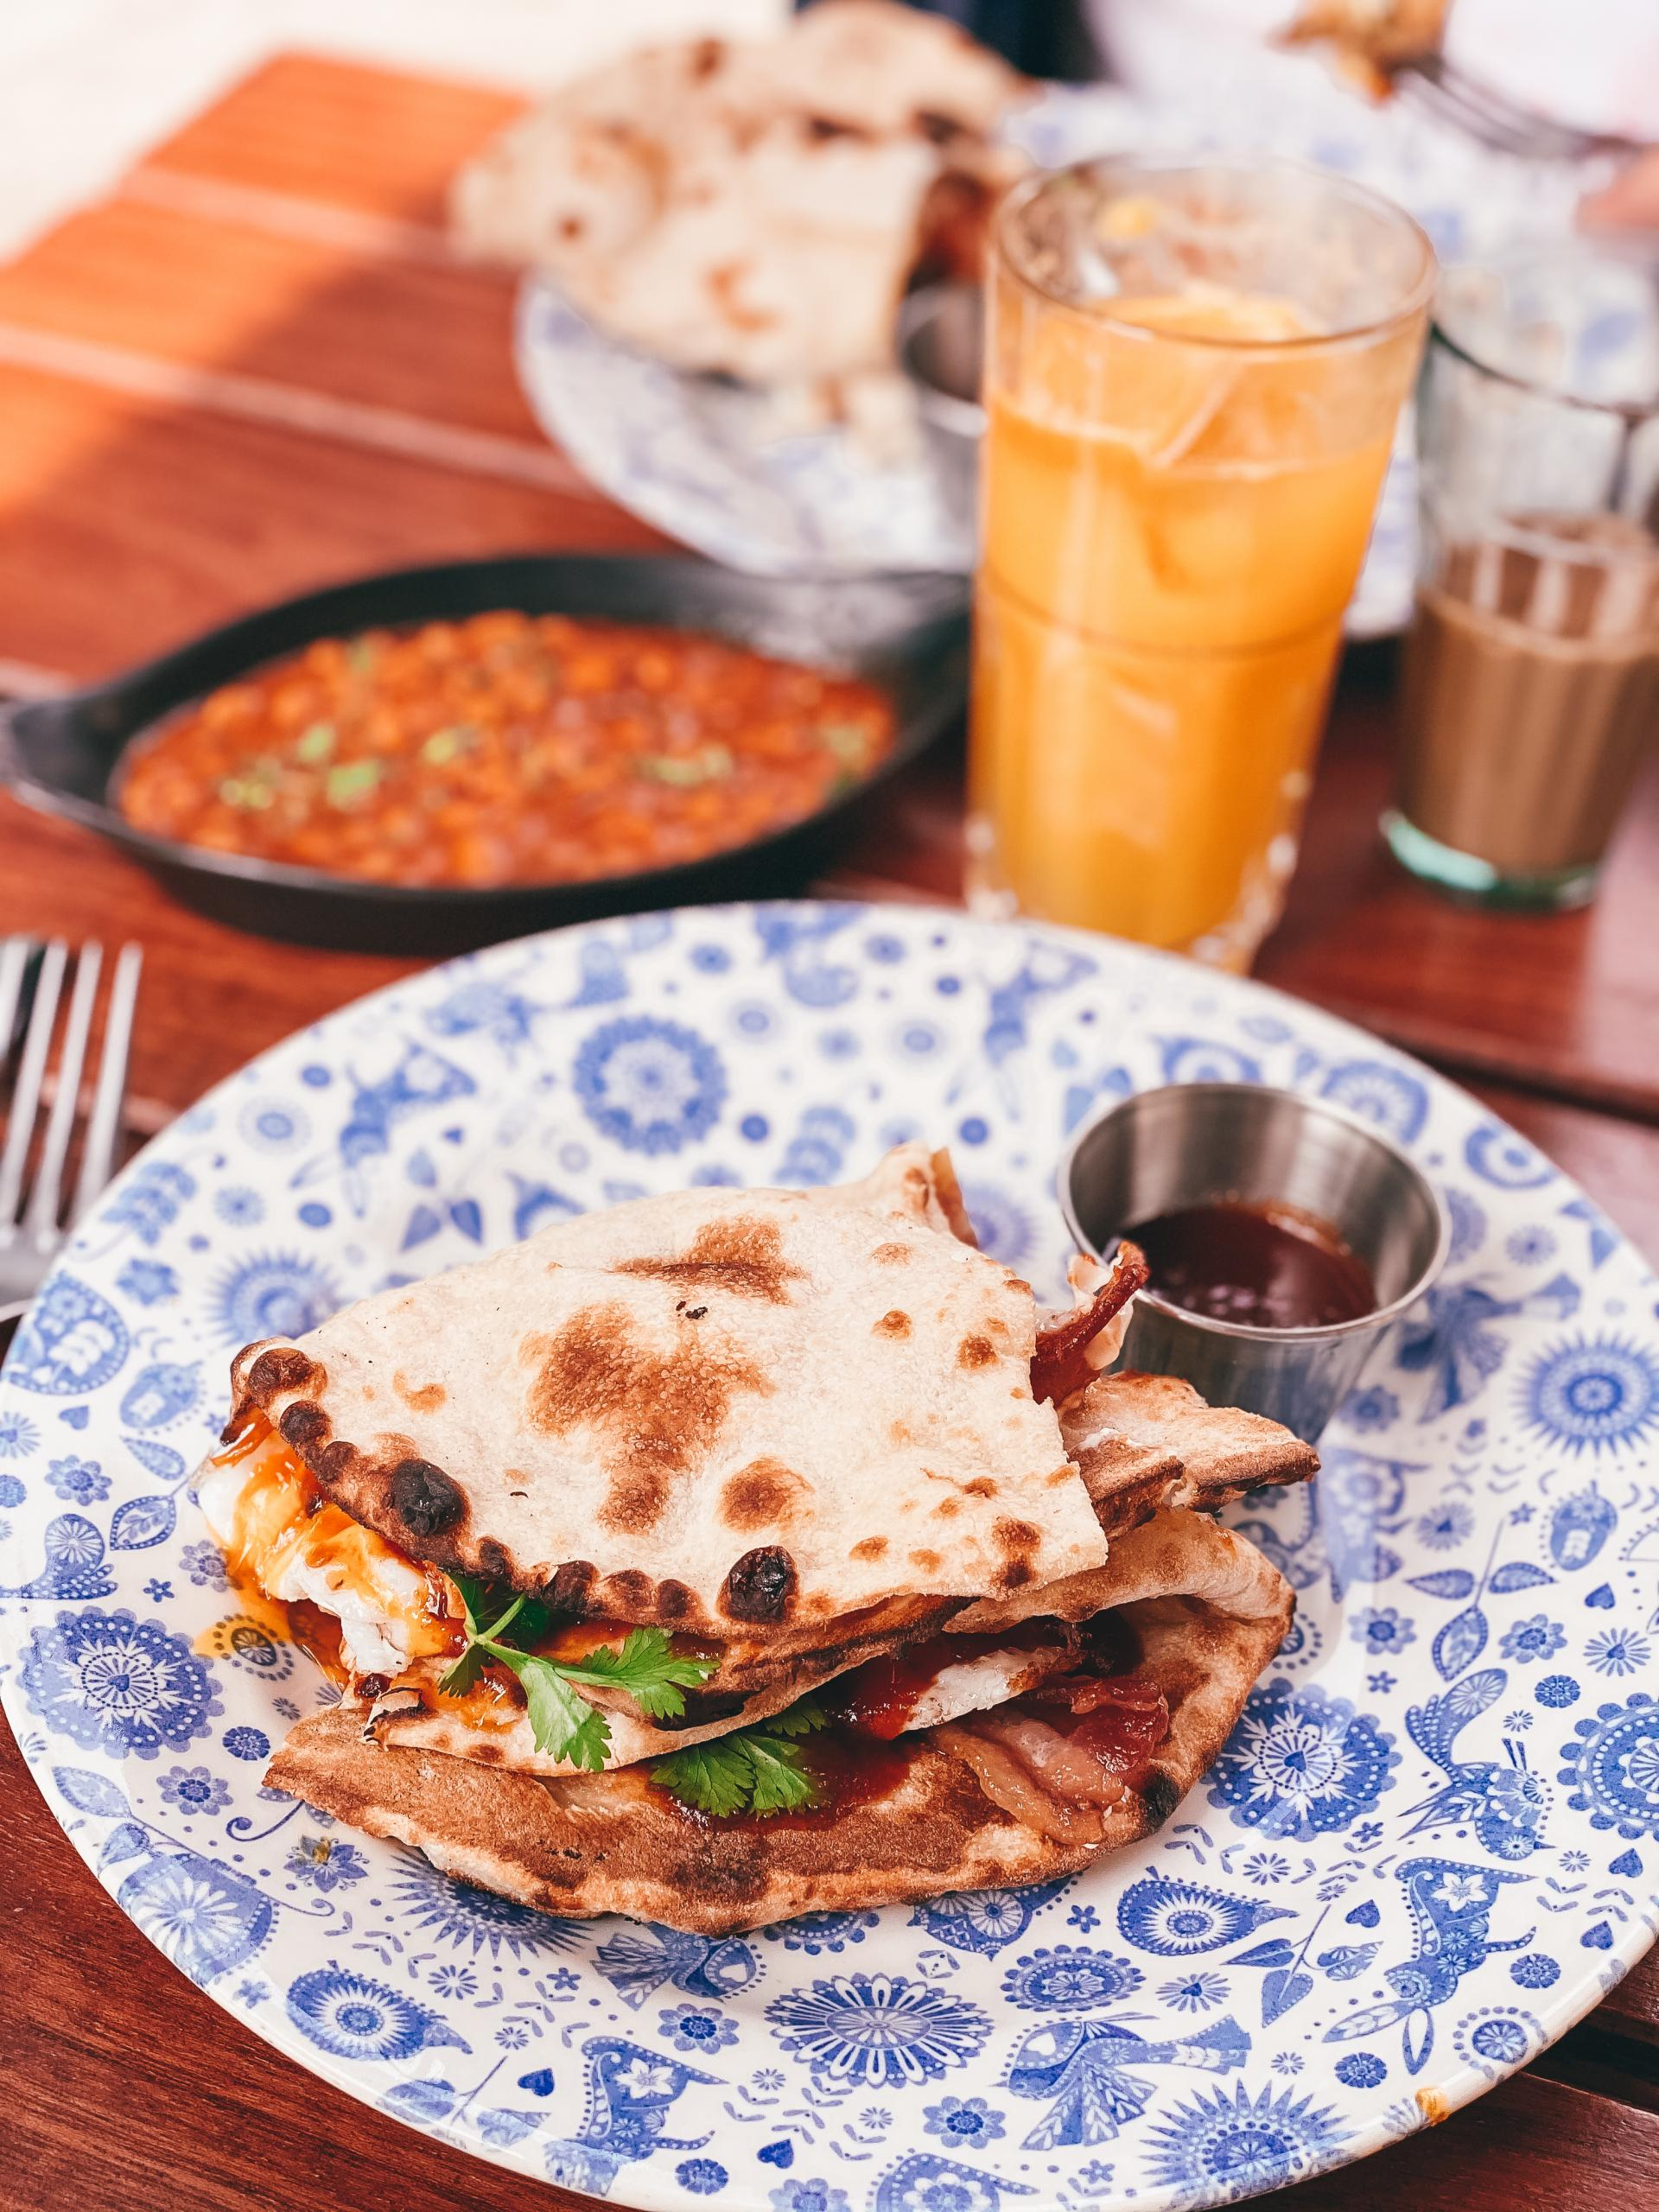 Bacon Naan at Dishoom. The best places for brunch in Birmingham.